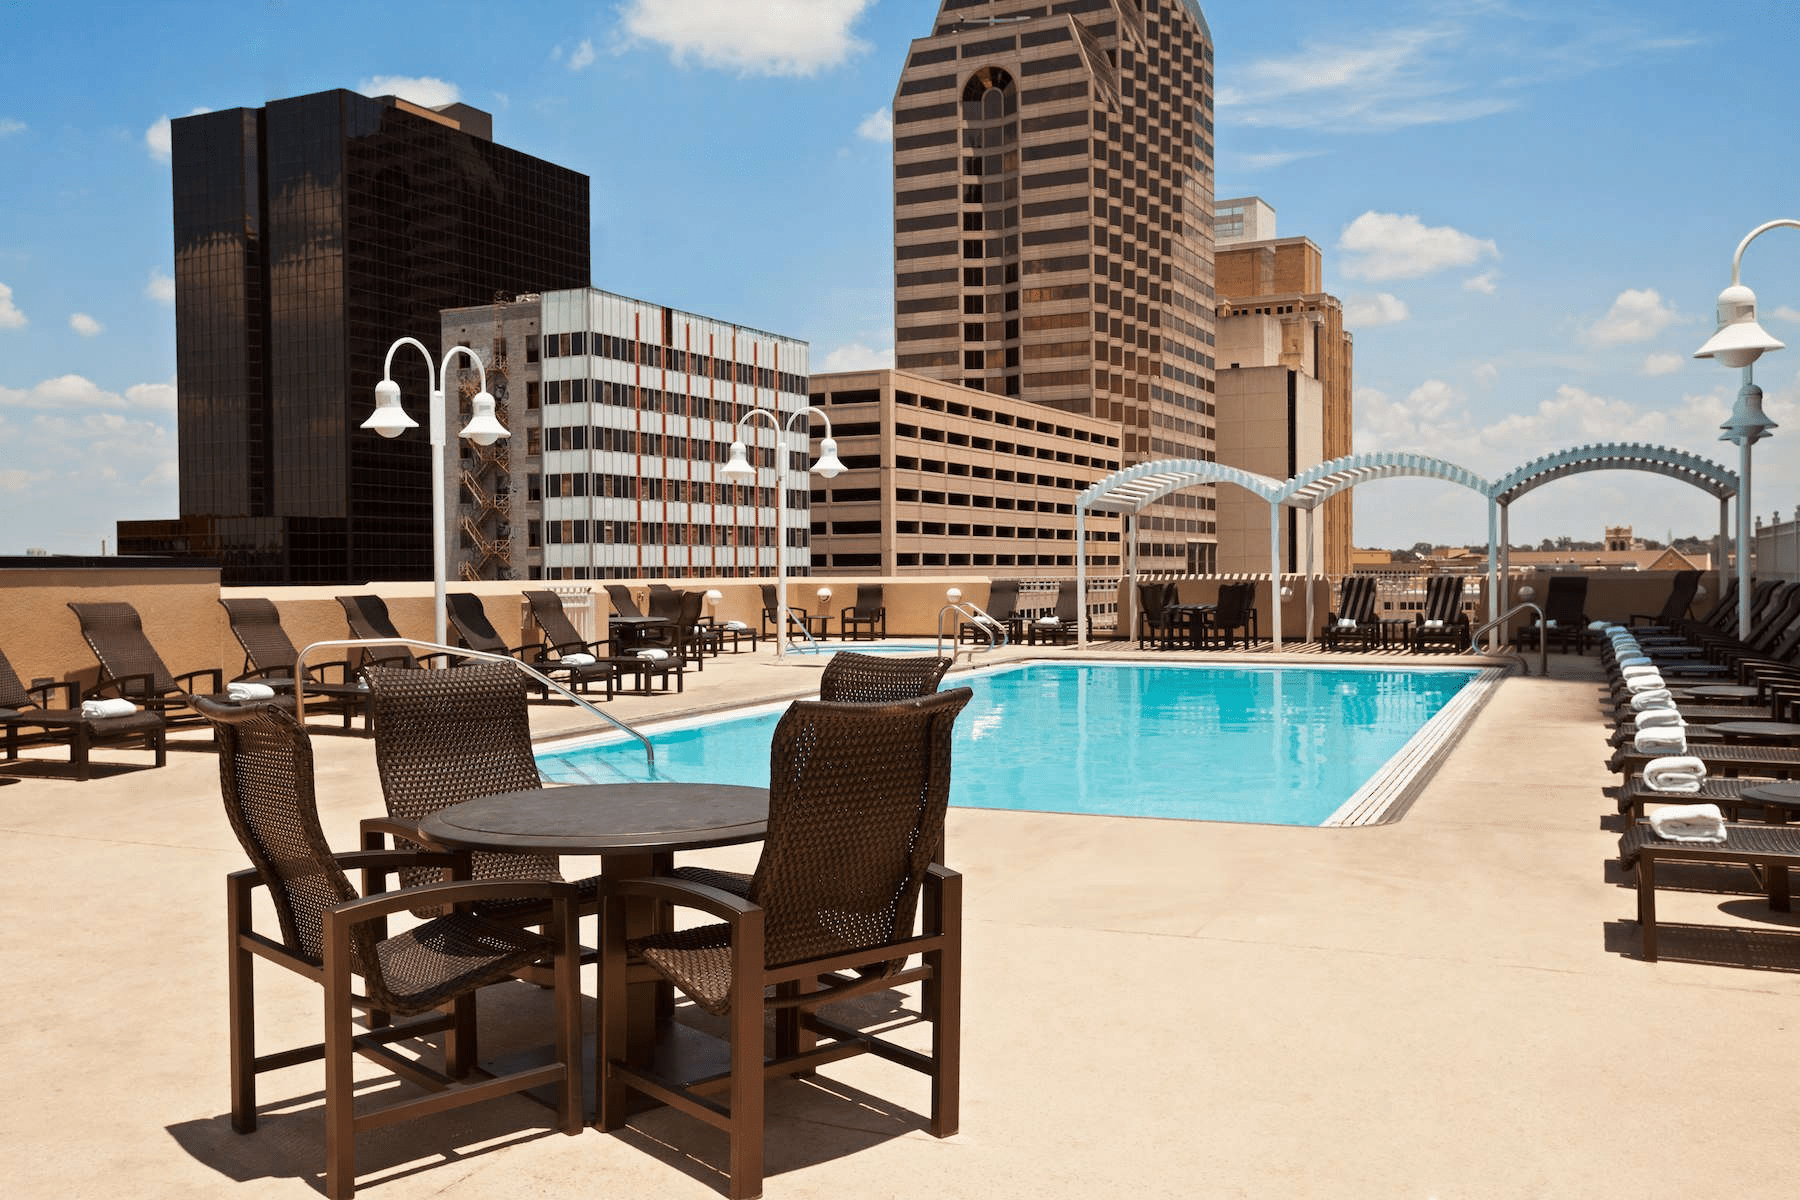 Wyndham Hotels: The Complete Guide